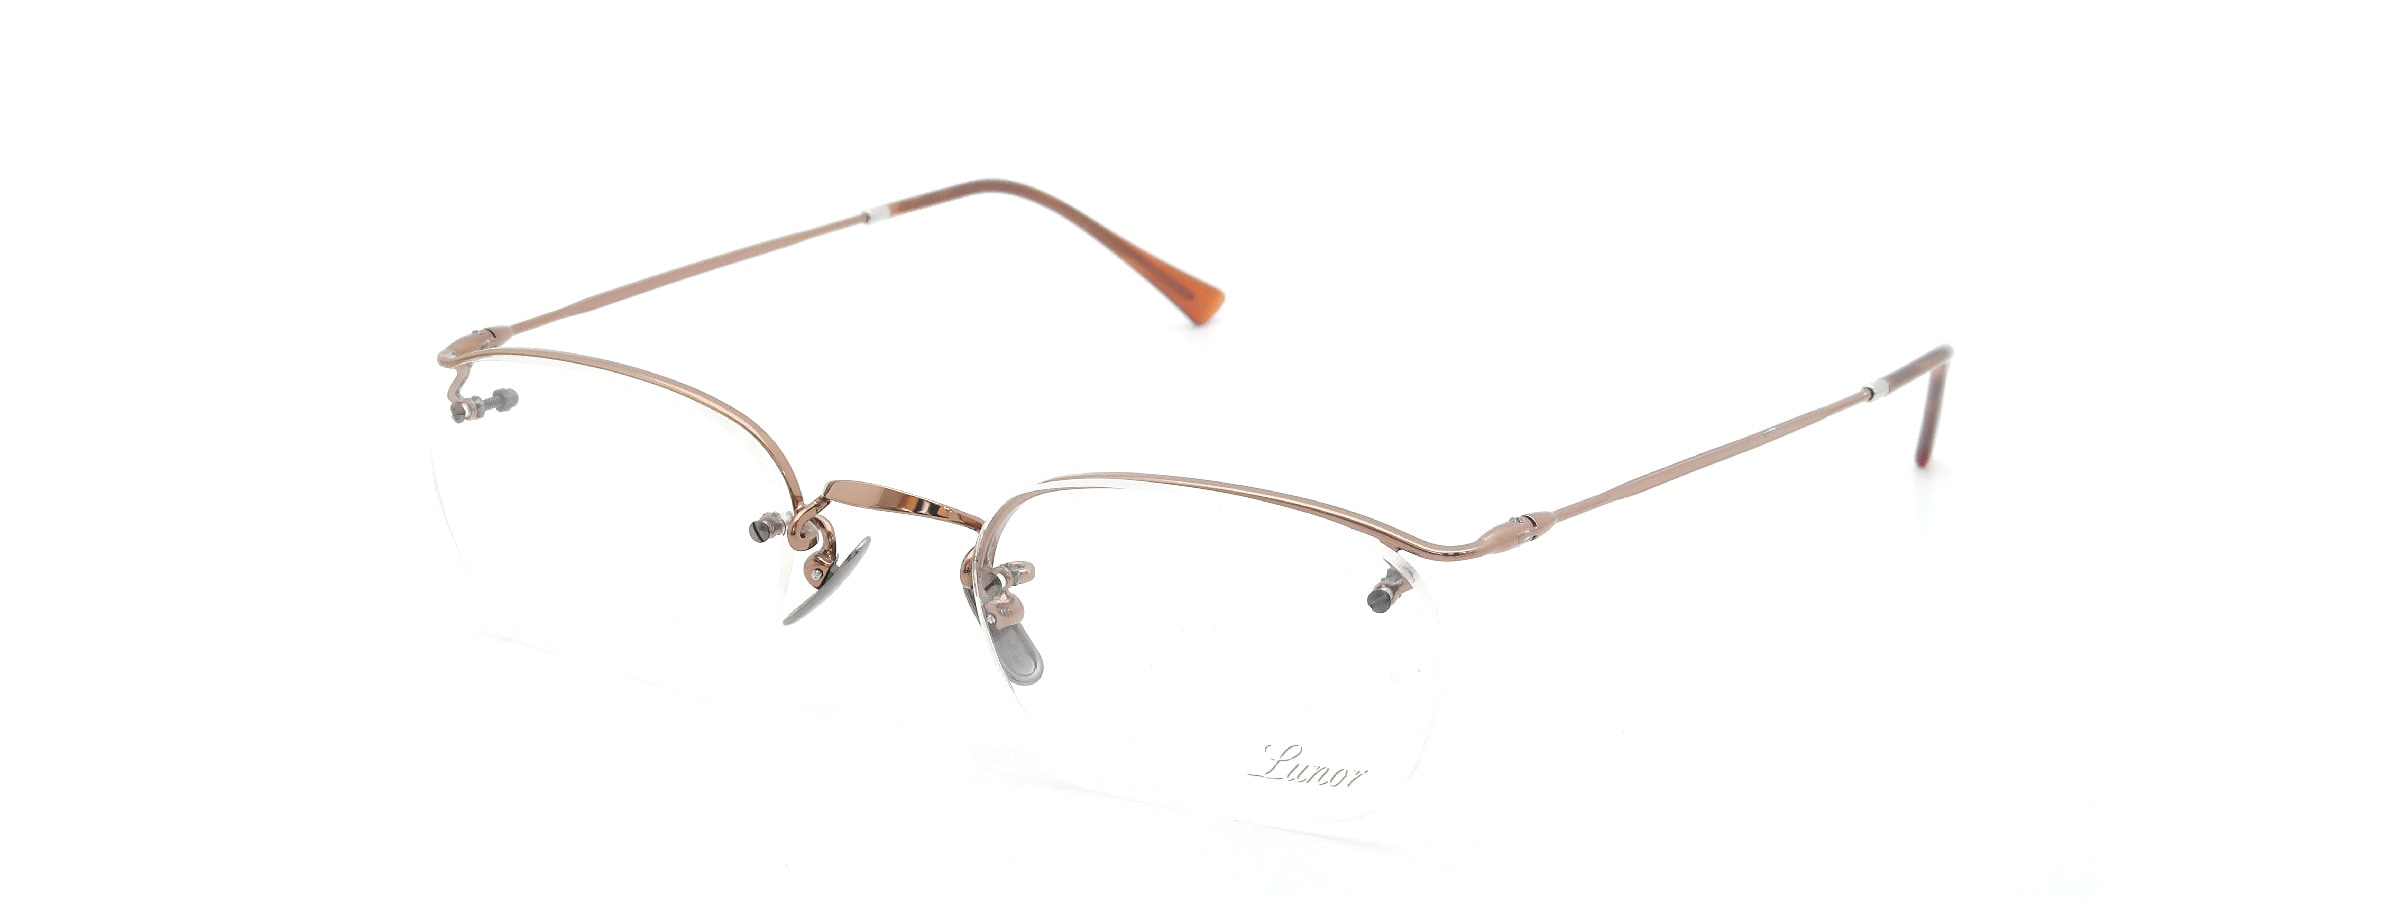 LUNOR Lunor Classic-One Anatomic